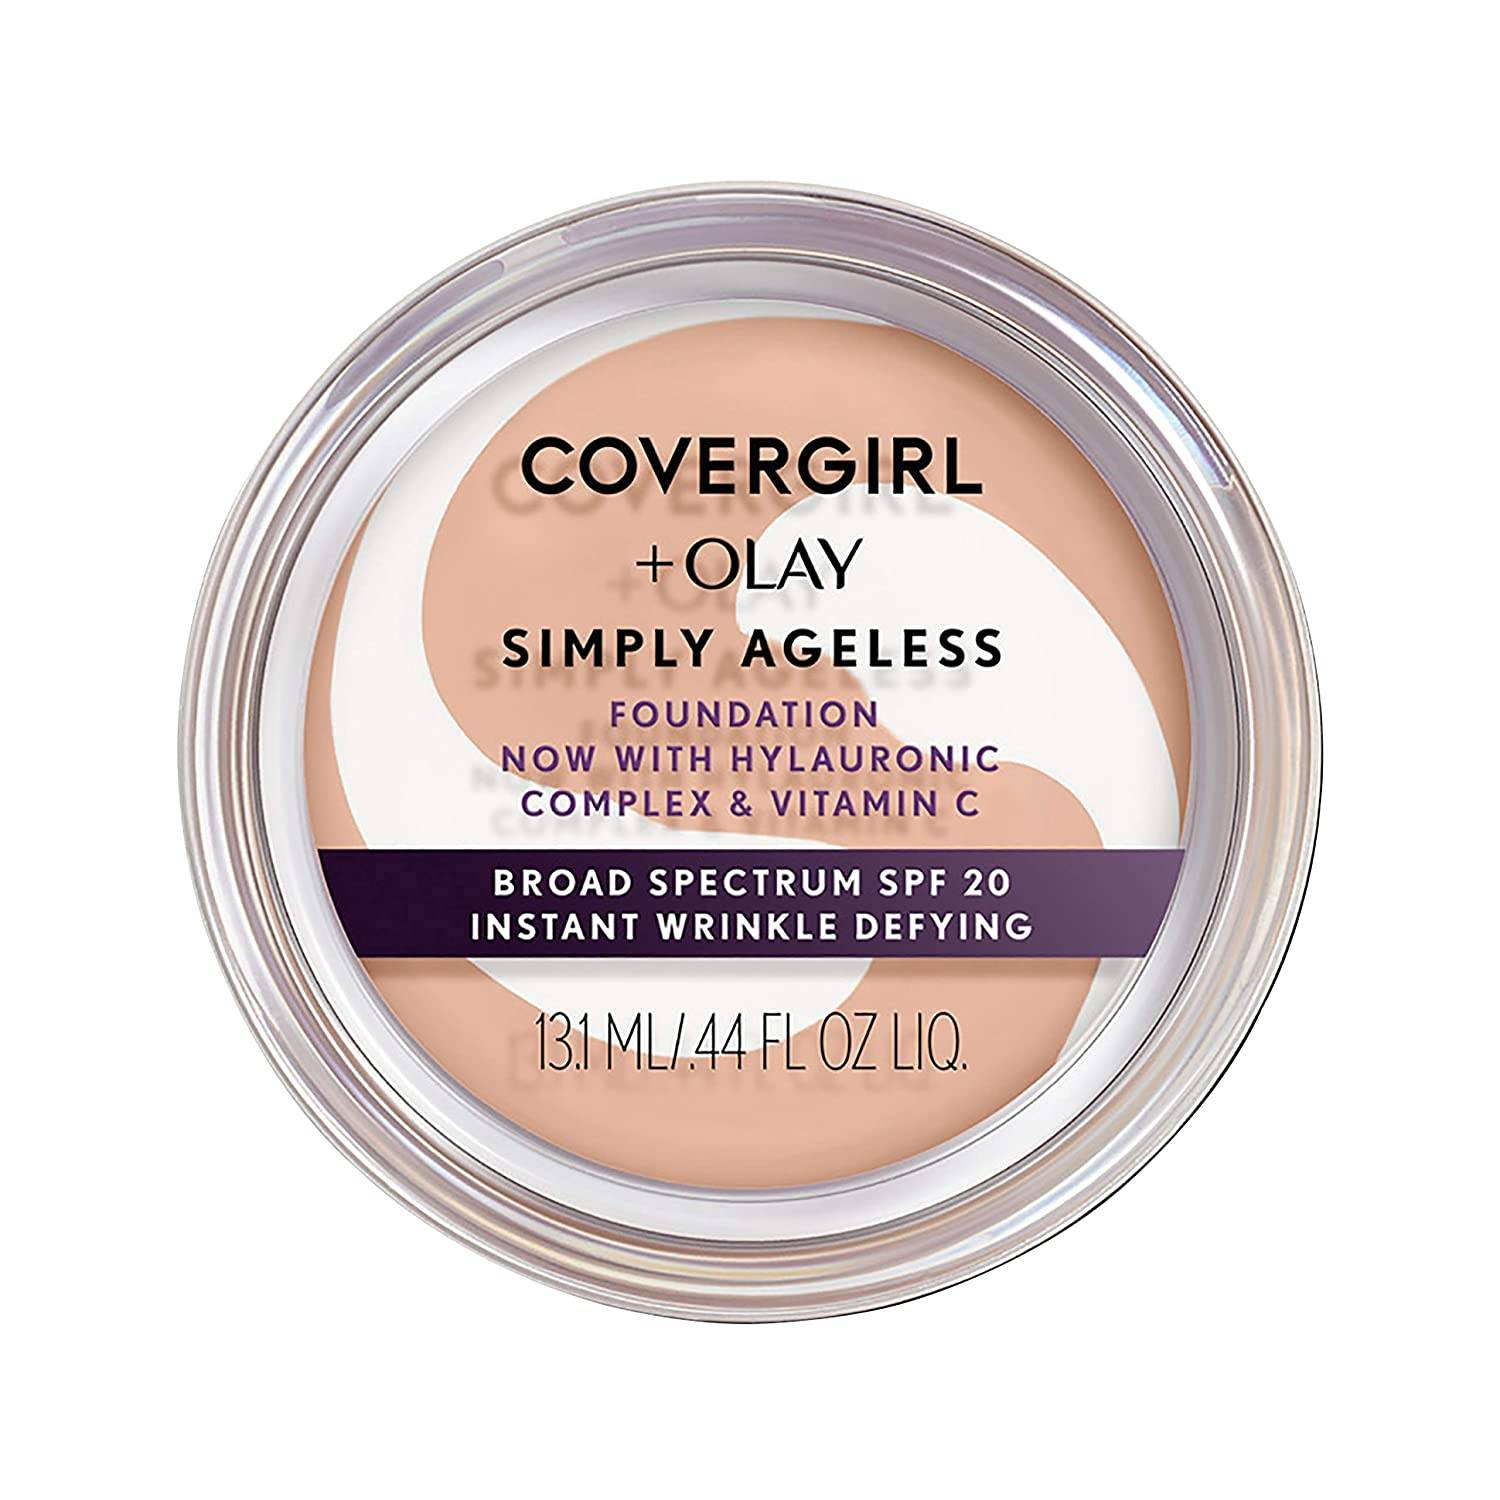 Covergirl& Olay Instant Wrinkle-Defying Foundation